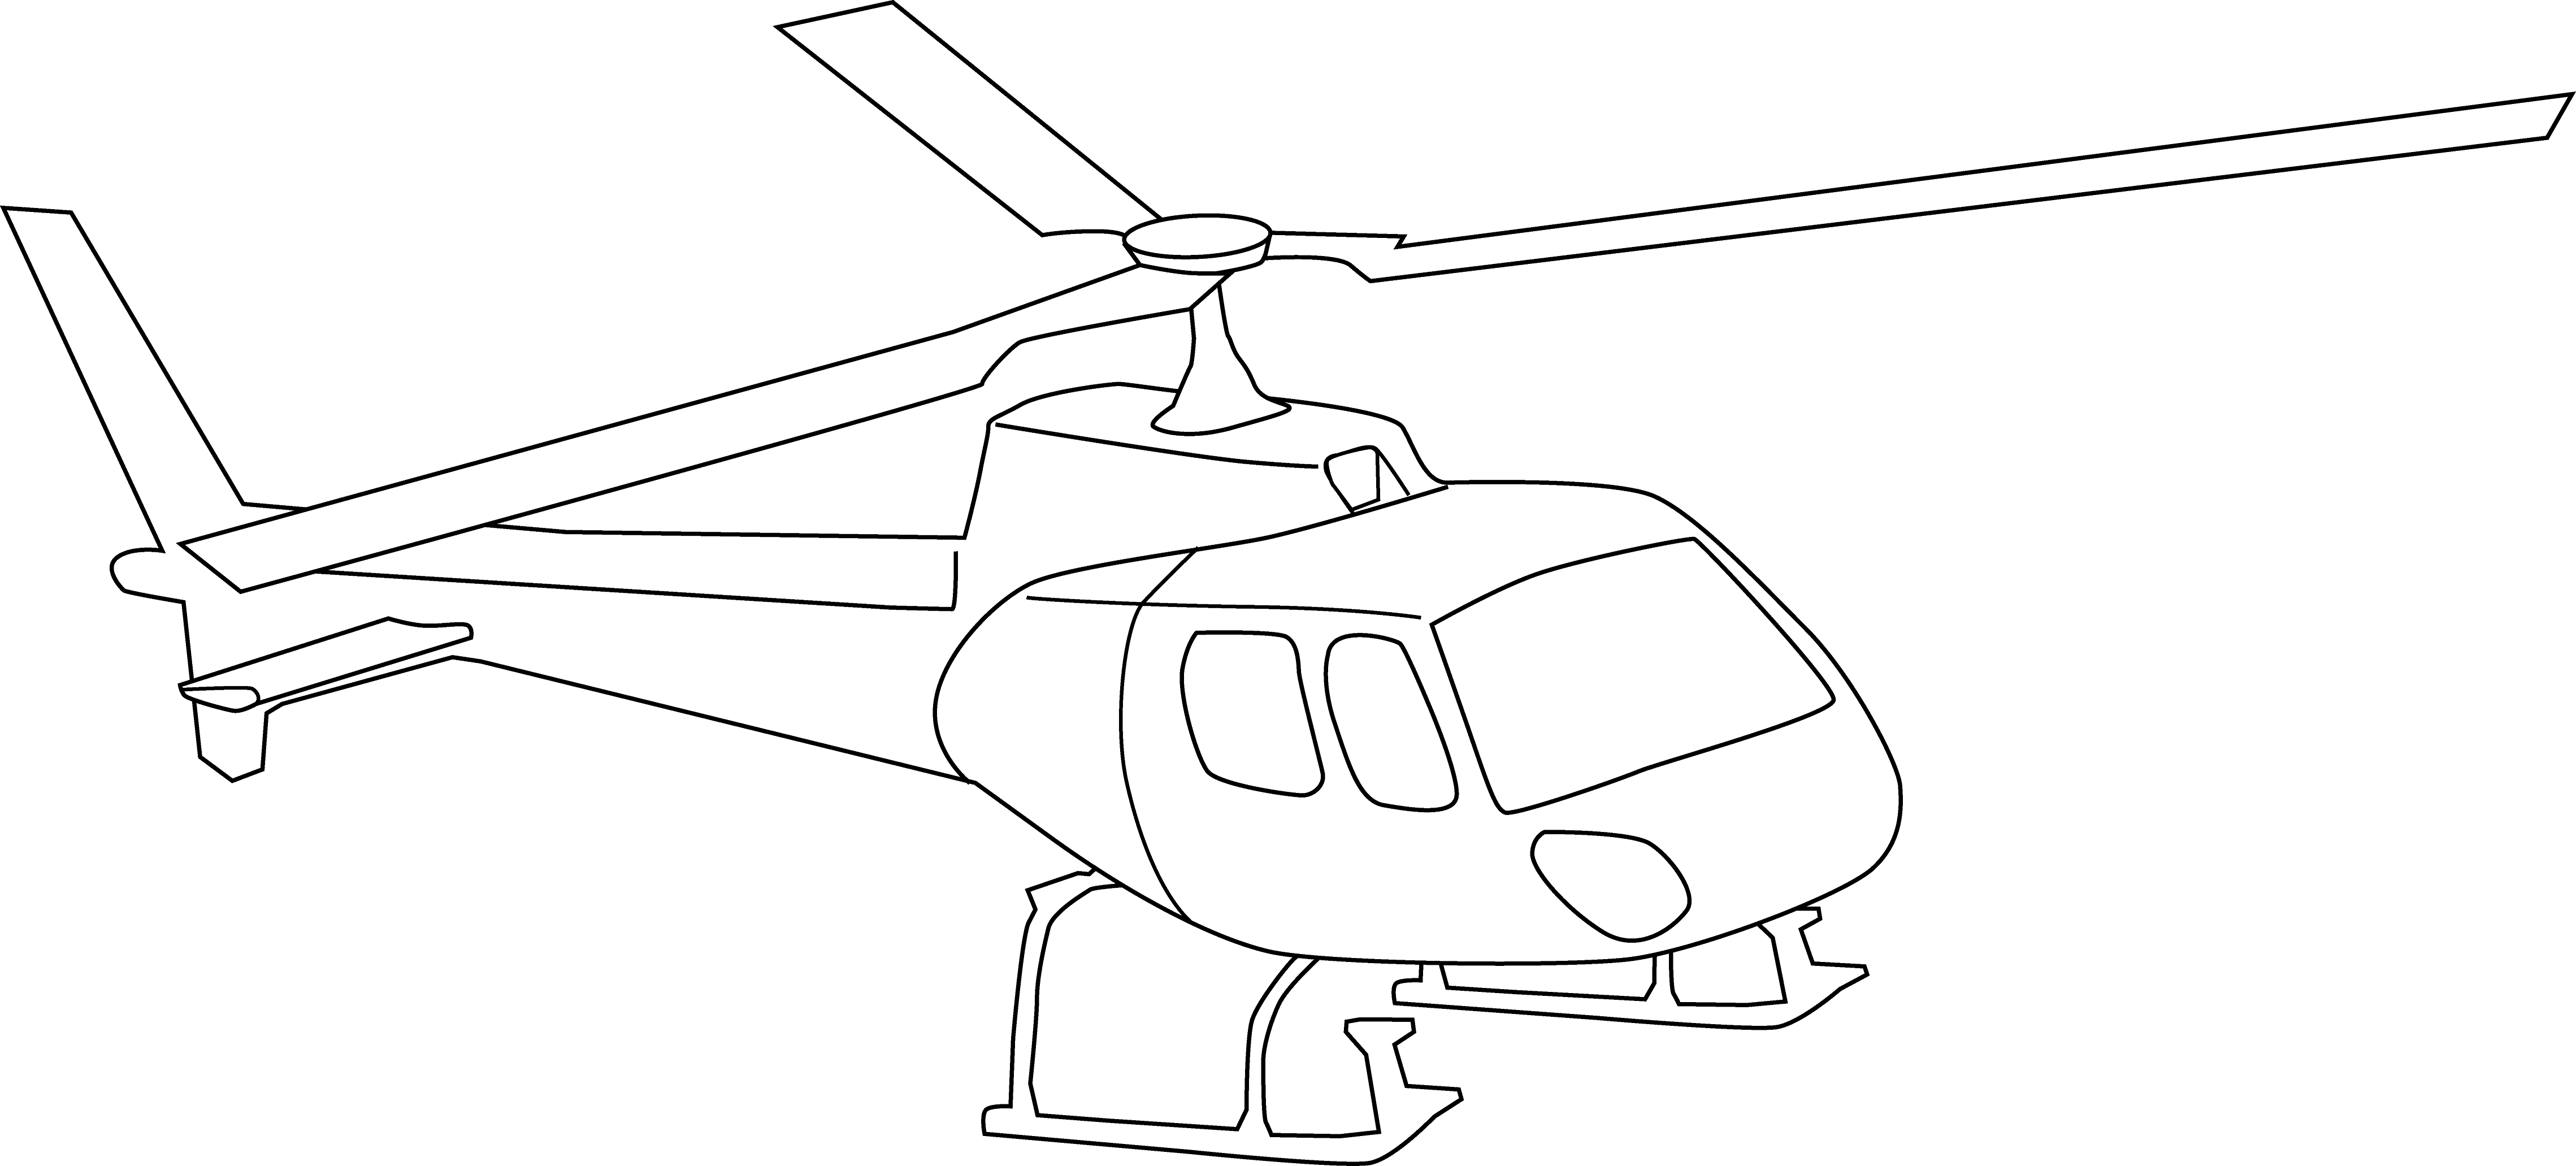 helicopter clipart black and white 6 | Clipart Station for Helicopter Clipart Black And White  51ane